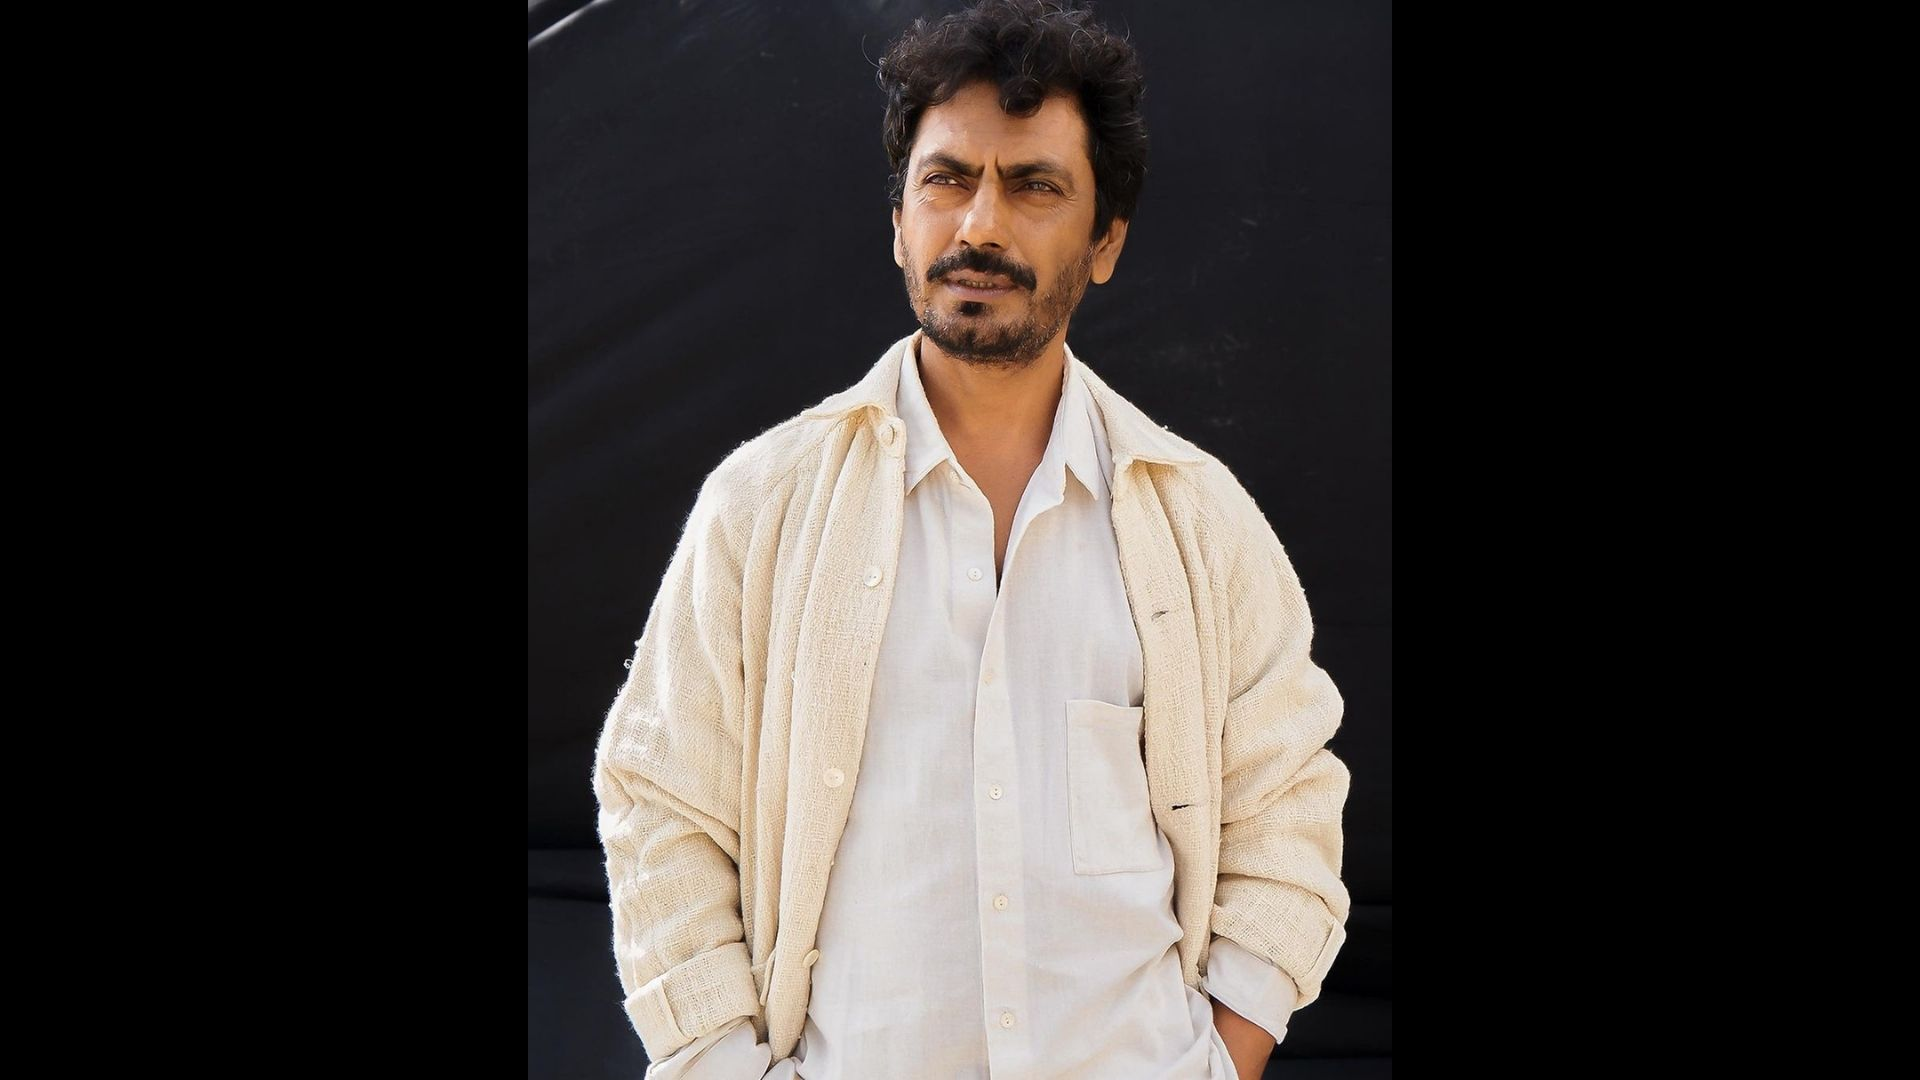 Nawazuddin Siddiqui Definition Of Success Isn't An International Film But Something Else; Know What It Is